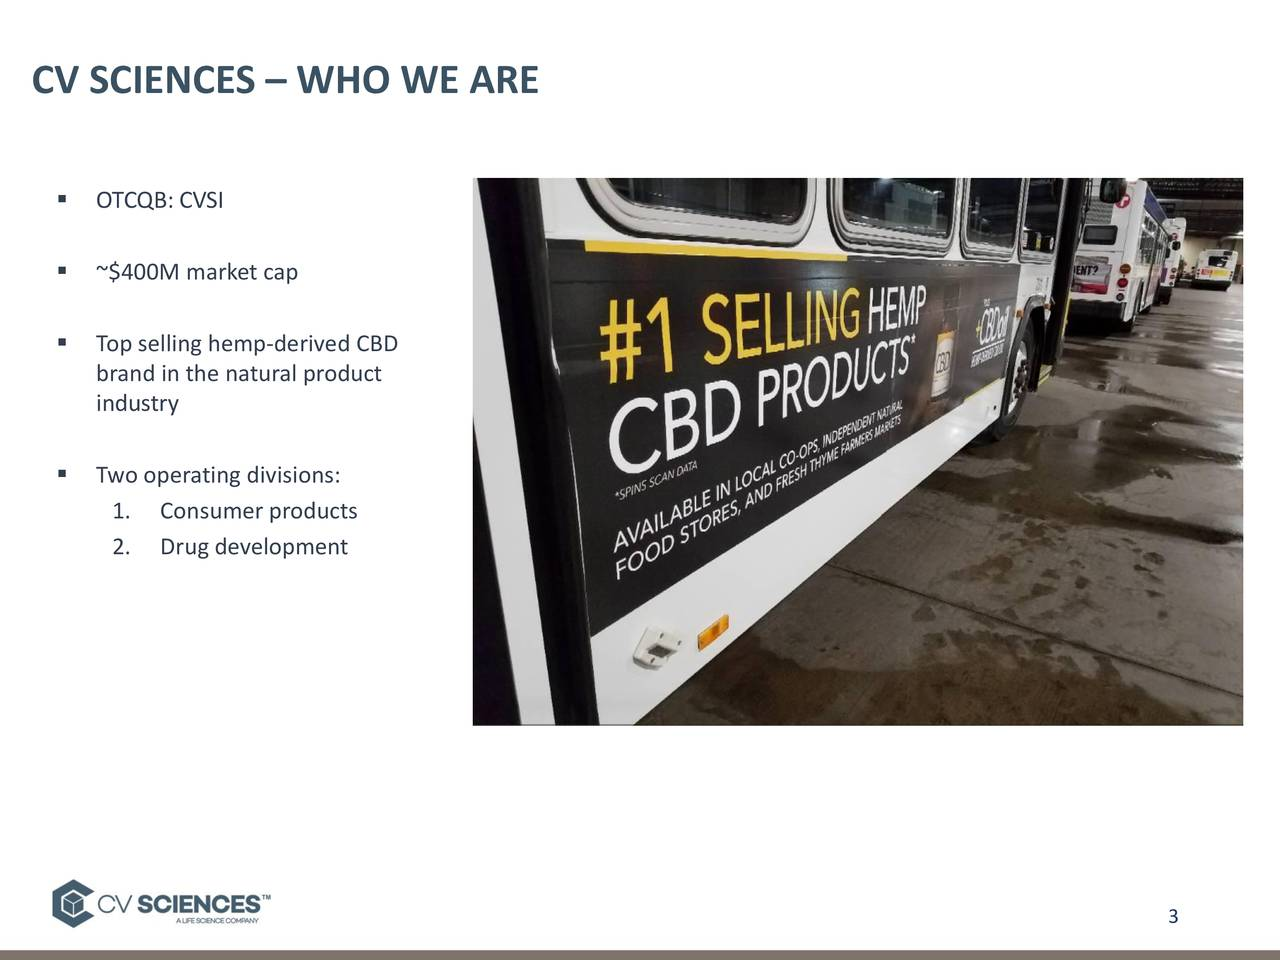 ▪ OTCQB: CVSI ▪ ~$400M market cap ▪ Top selling hemp-derived CBD brand in the natural product industry ▪ Two operating divisions: 1. Consumer products 2. Drug development 3